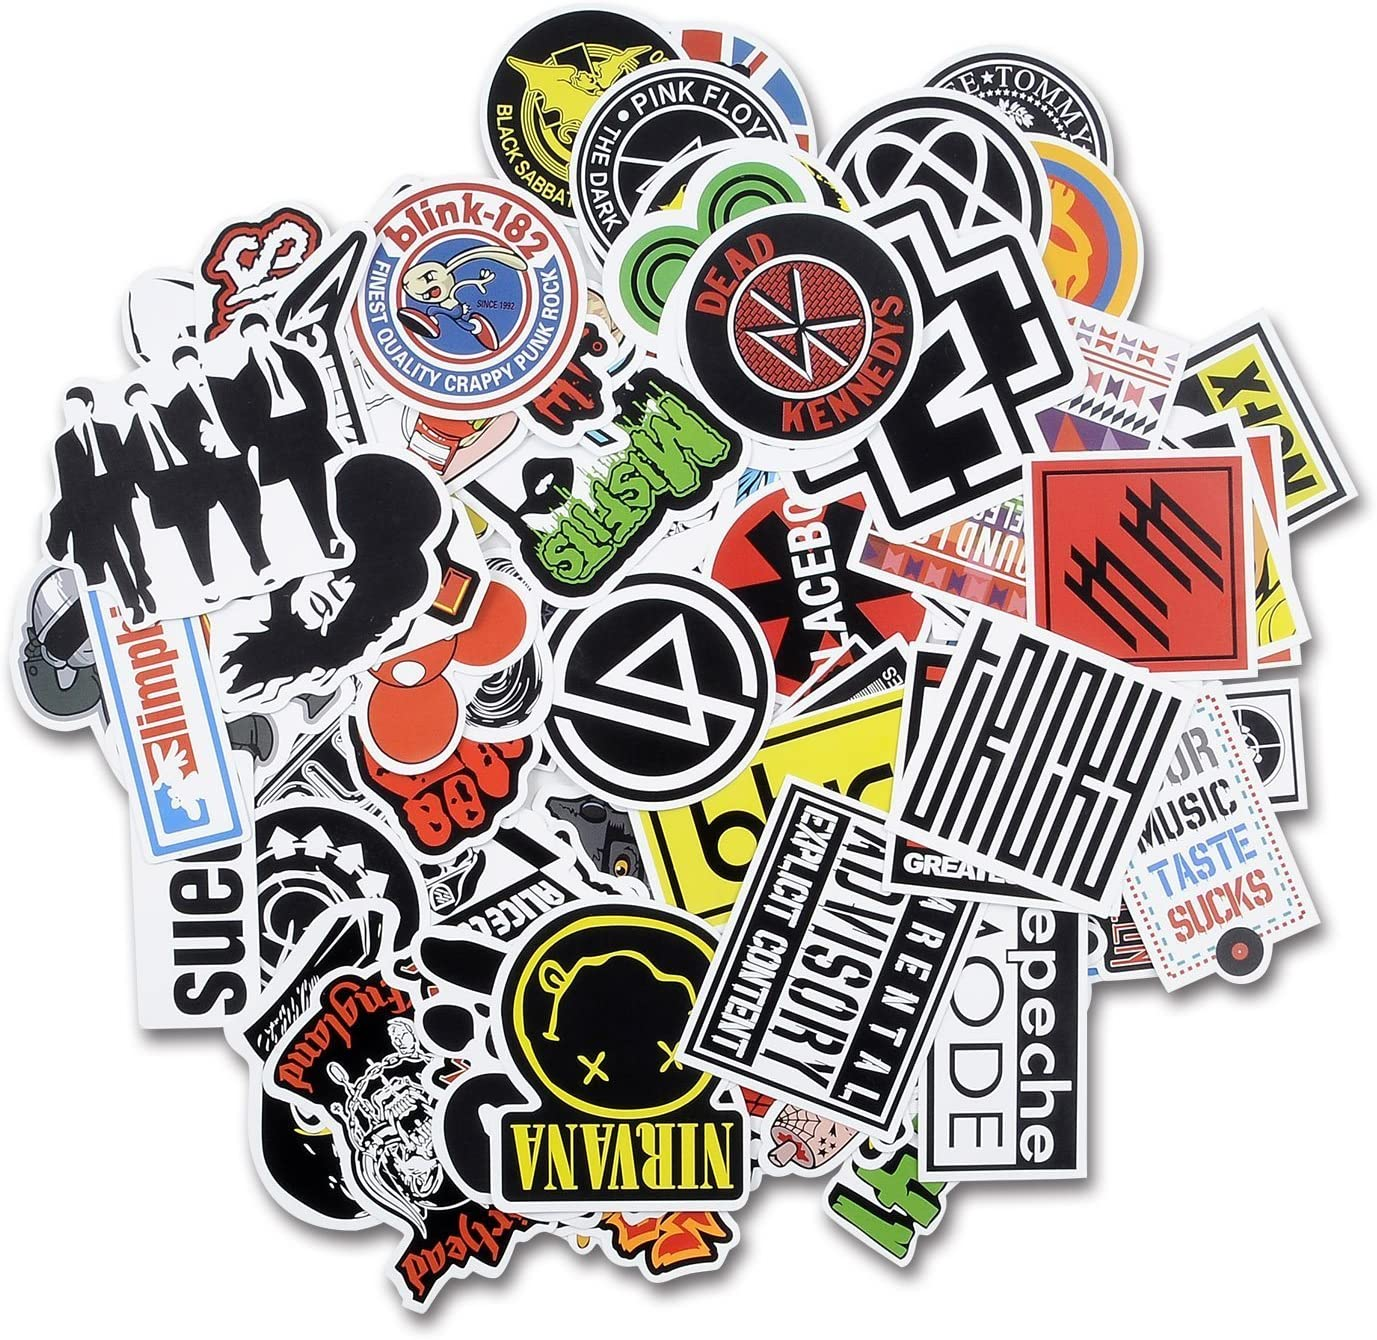 Breezypals Laptop Stickers [100 pcs], Car Stickers Luggage Decal Graffiti Guitar Skateboard Vinyl Stickers for Laptop, Rock and Roll Music Band Stickers- No-Duplicate Sticker Pack